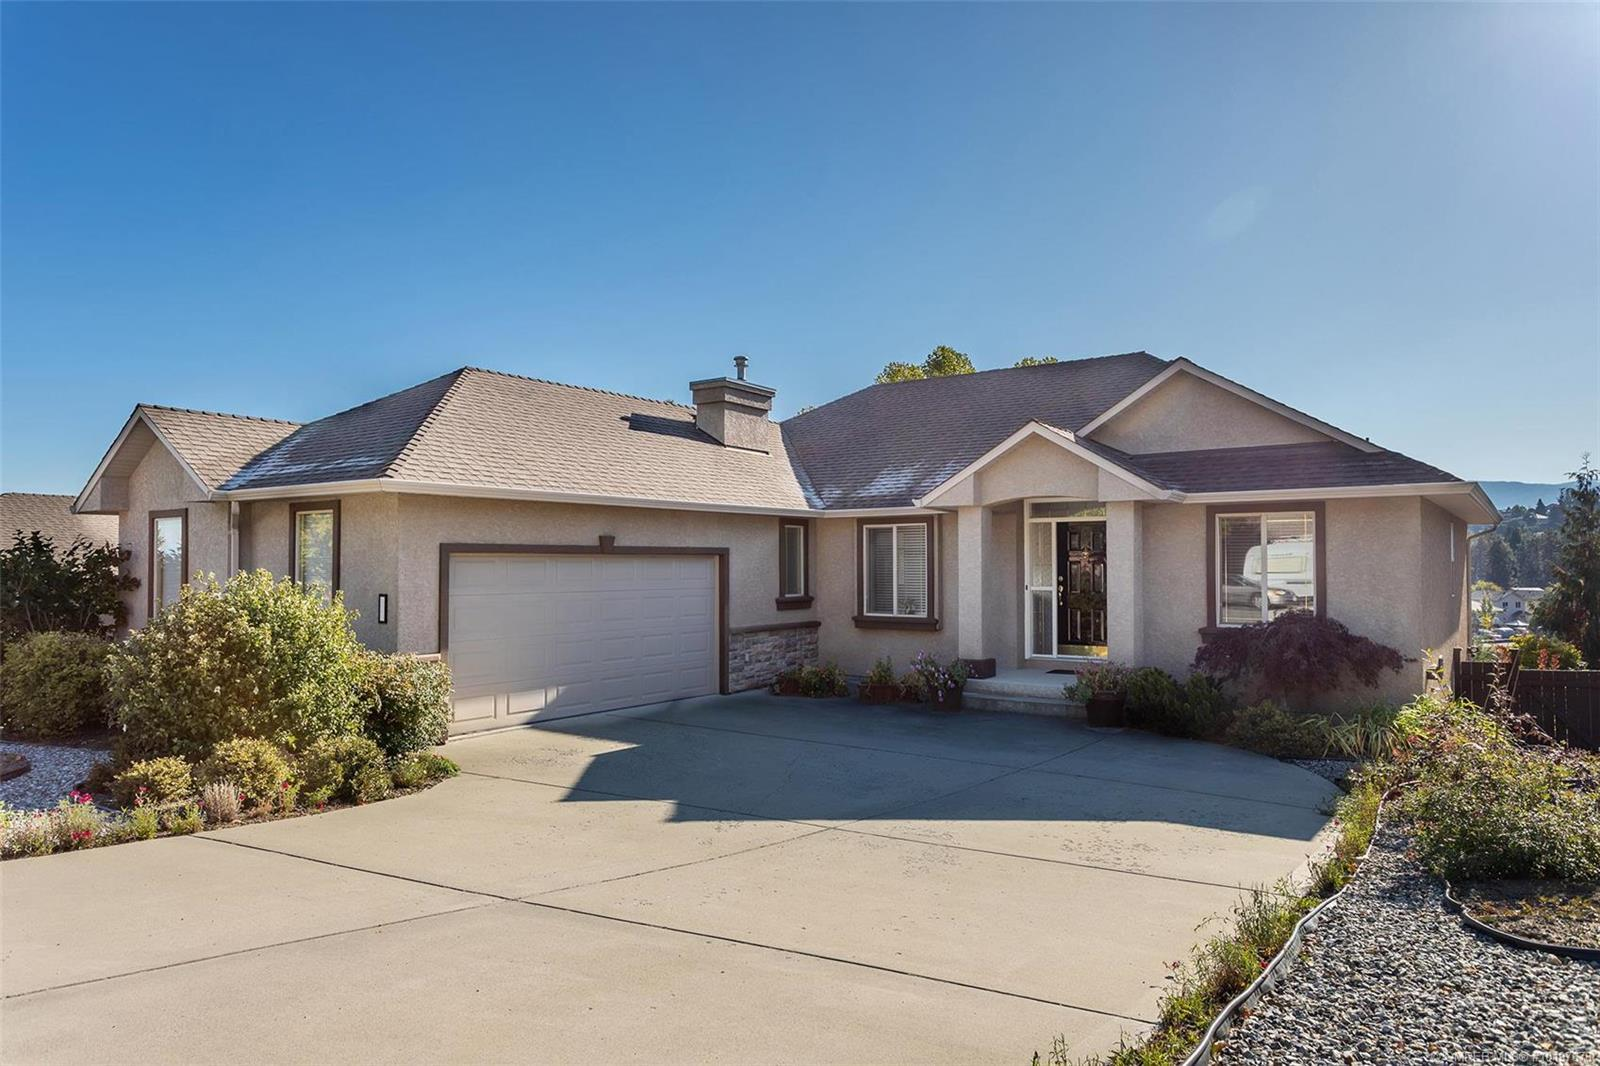 Removed: 863 Westview Way, Kelowna, BC - Removed on 2020-02-04 05:09:09